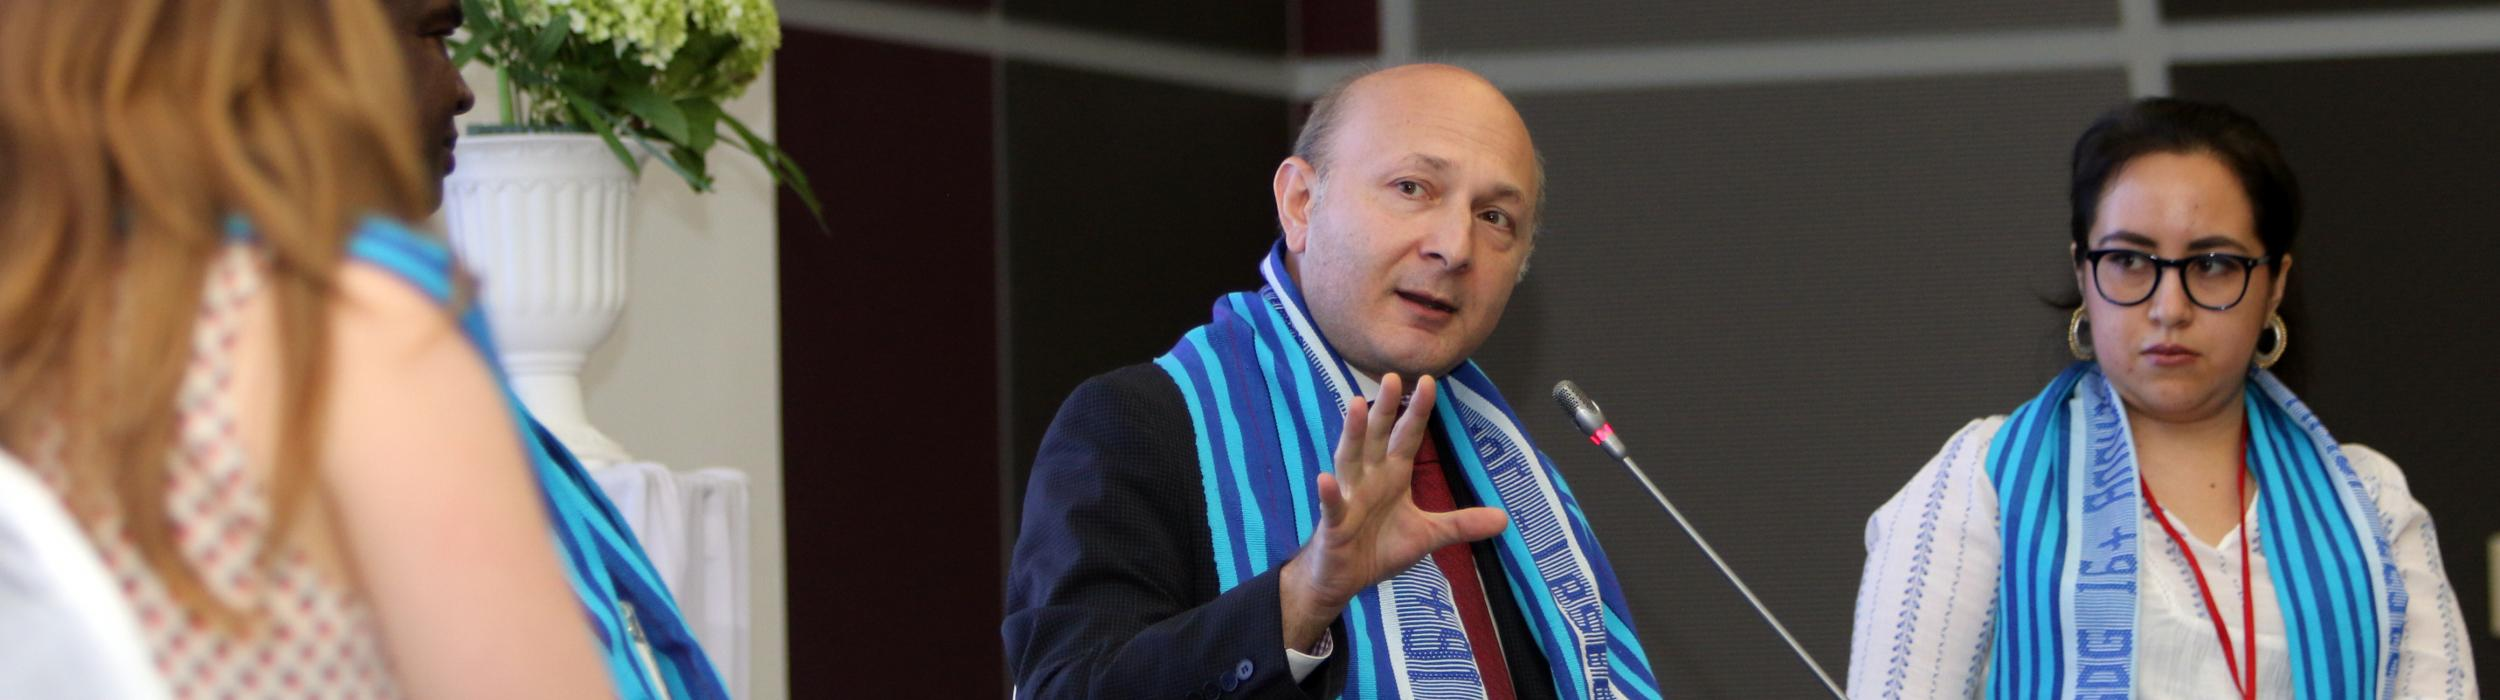 H.E. Imnadze Speaking at a Panel